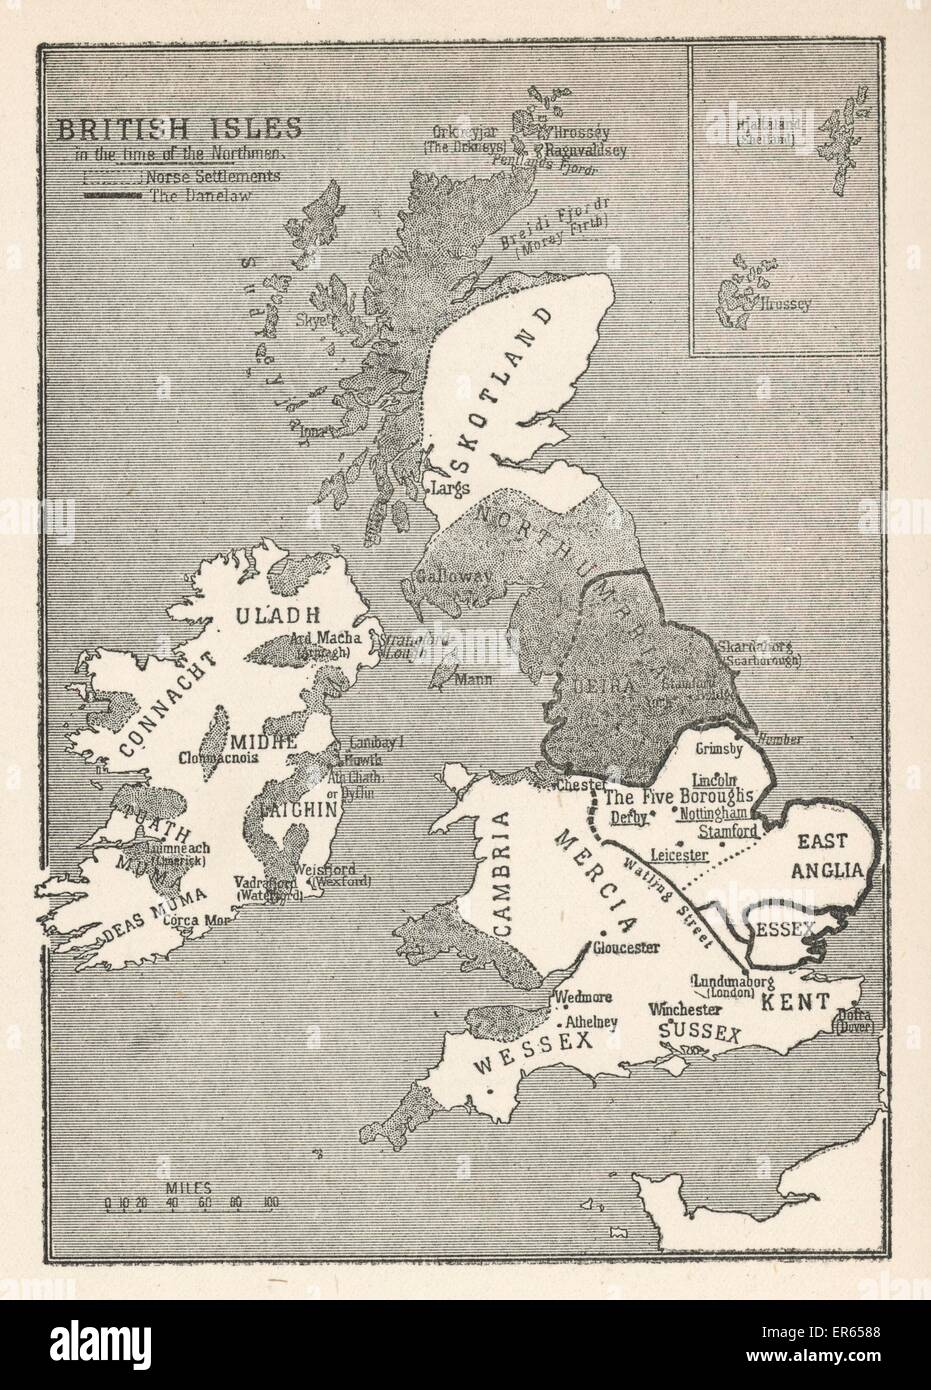 Map Of Ireland Vikings.A Map Of The British Isles Including Ireland During The Time Of